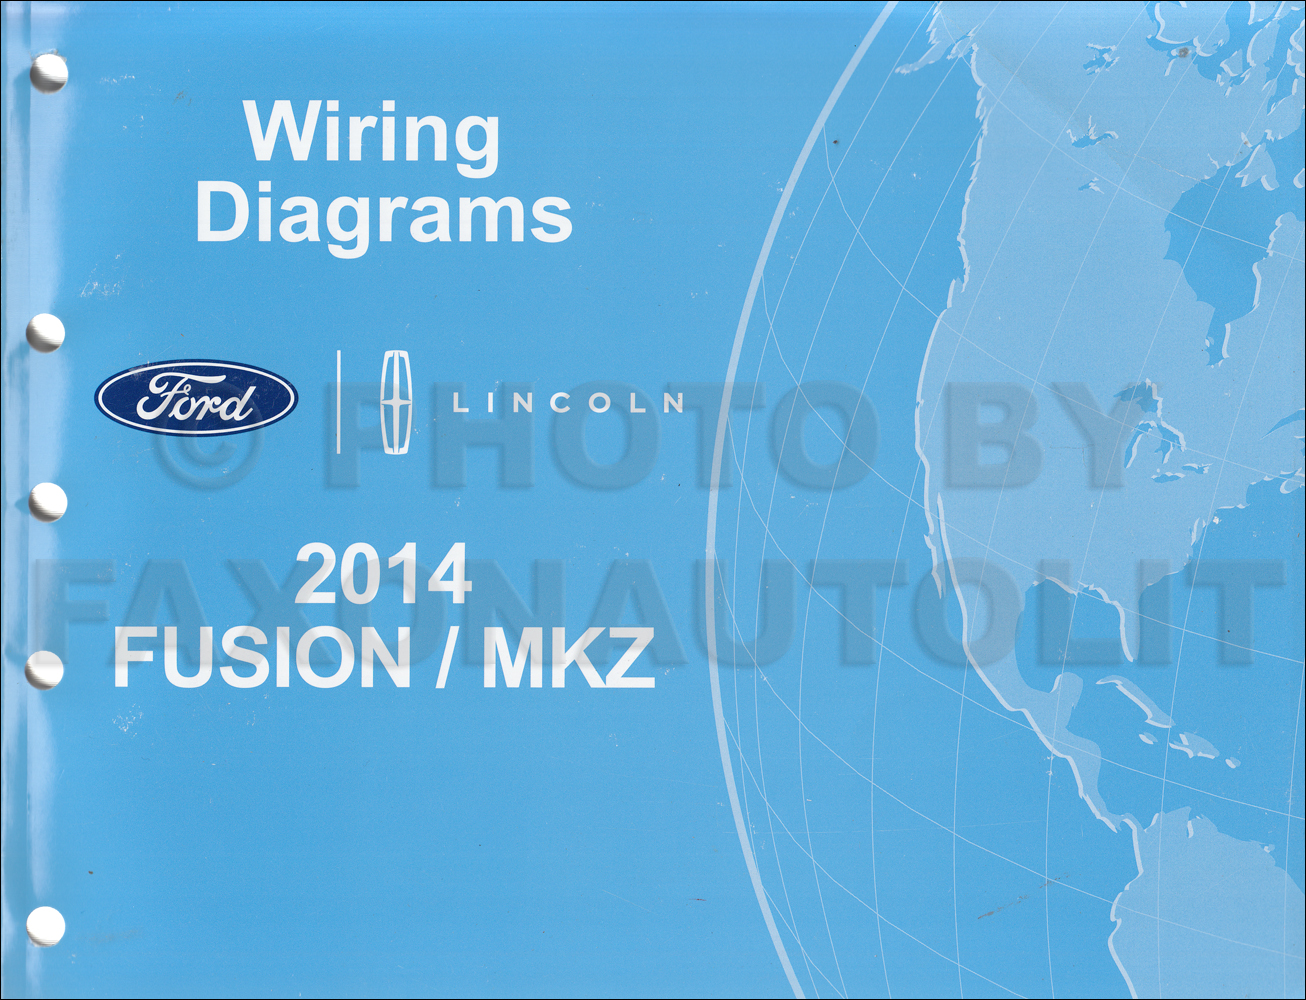 2014 Ford Fusion Energi Hybrid Lincoln Mkz Hybrid Wiring Diagram Manual Original